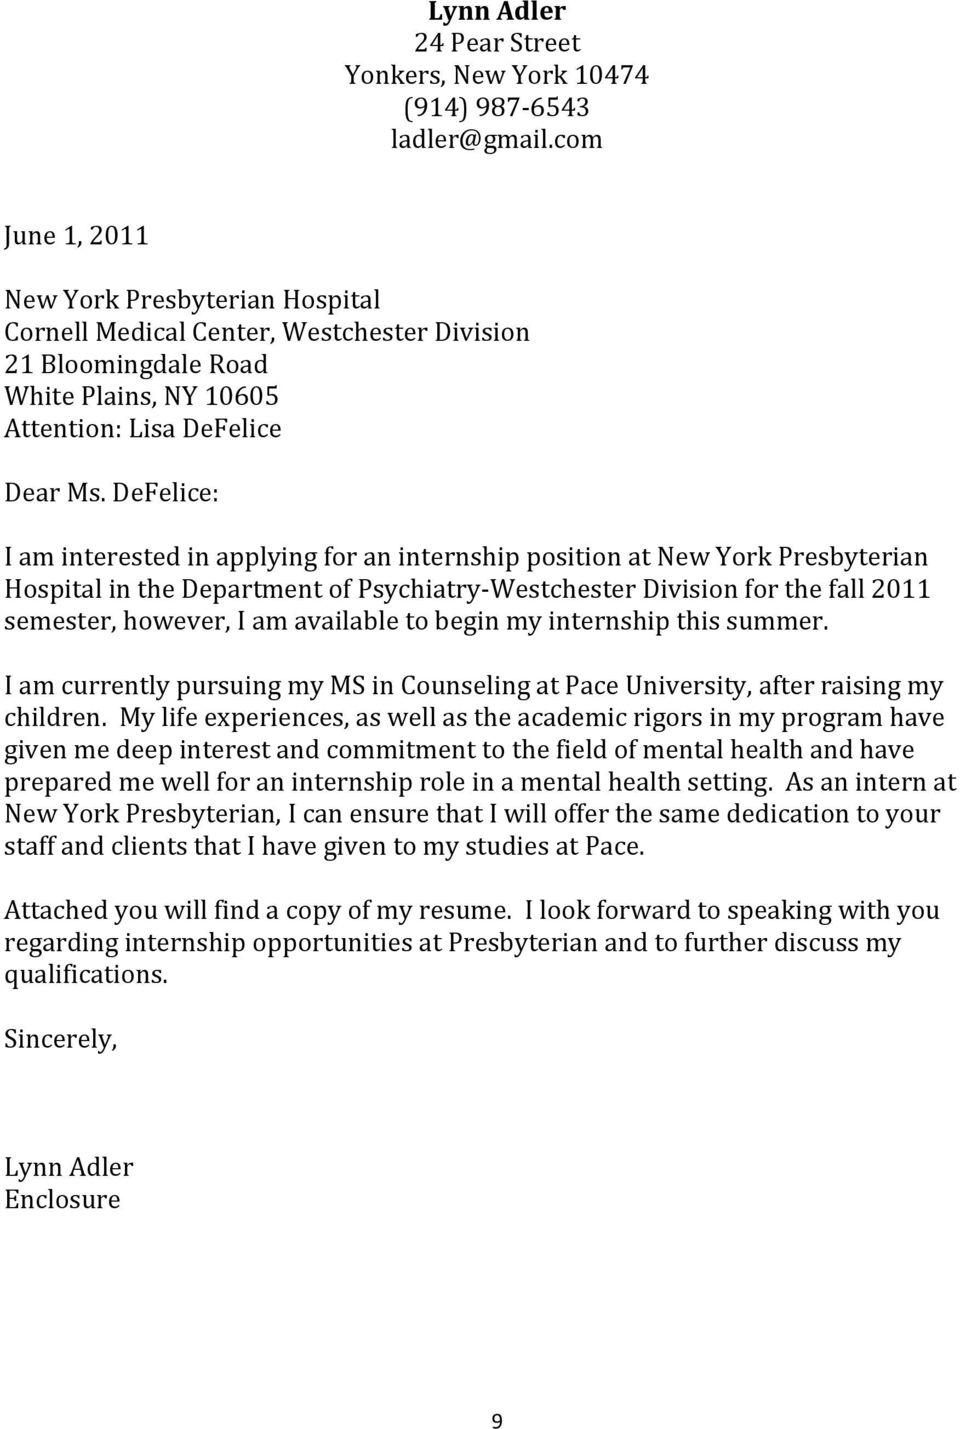 DeFelice: I am interested in applying for an internship position at New York Presbyterian Hospital in the Department of Psychiatry-Westchester Division for the fall 2011 semester, however, I am